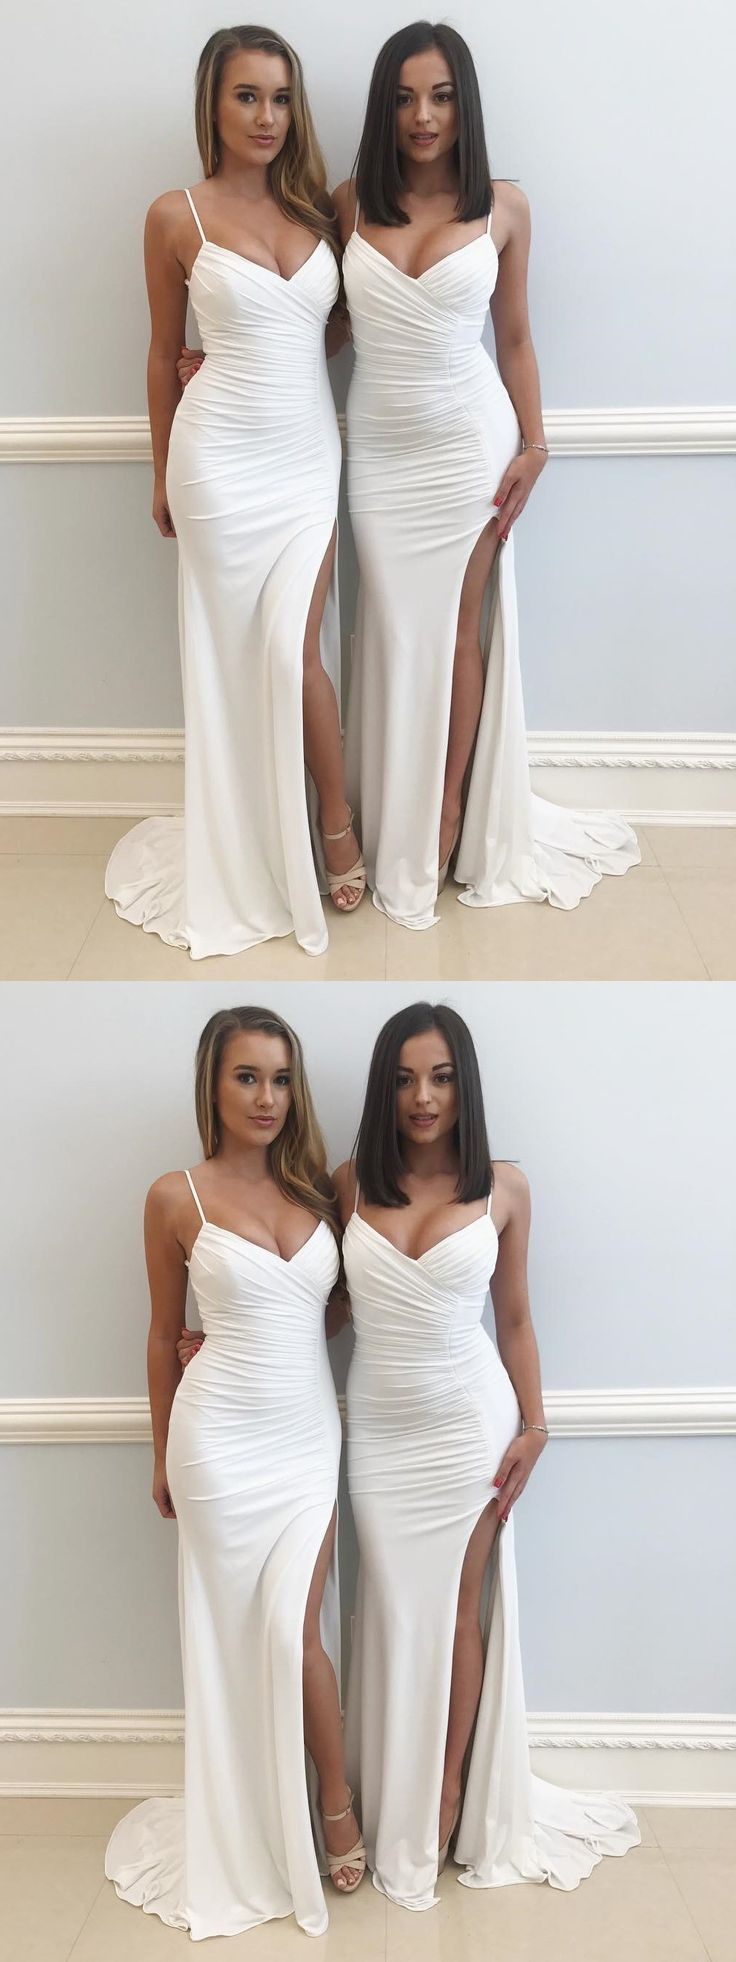 modest jersey prom party dresses split, simple sexy evening gowns, elegant wedding party dresses.